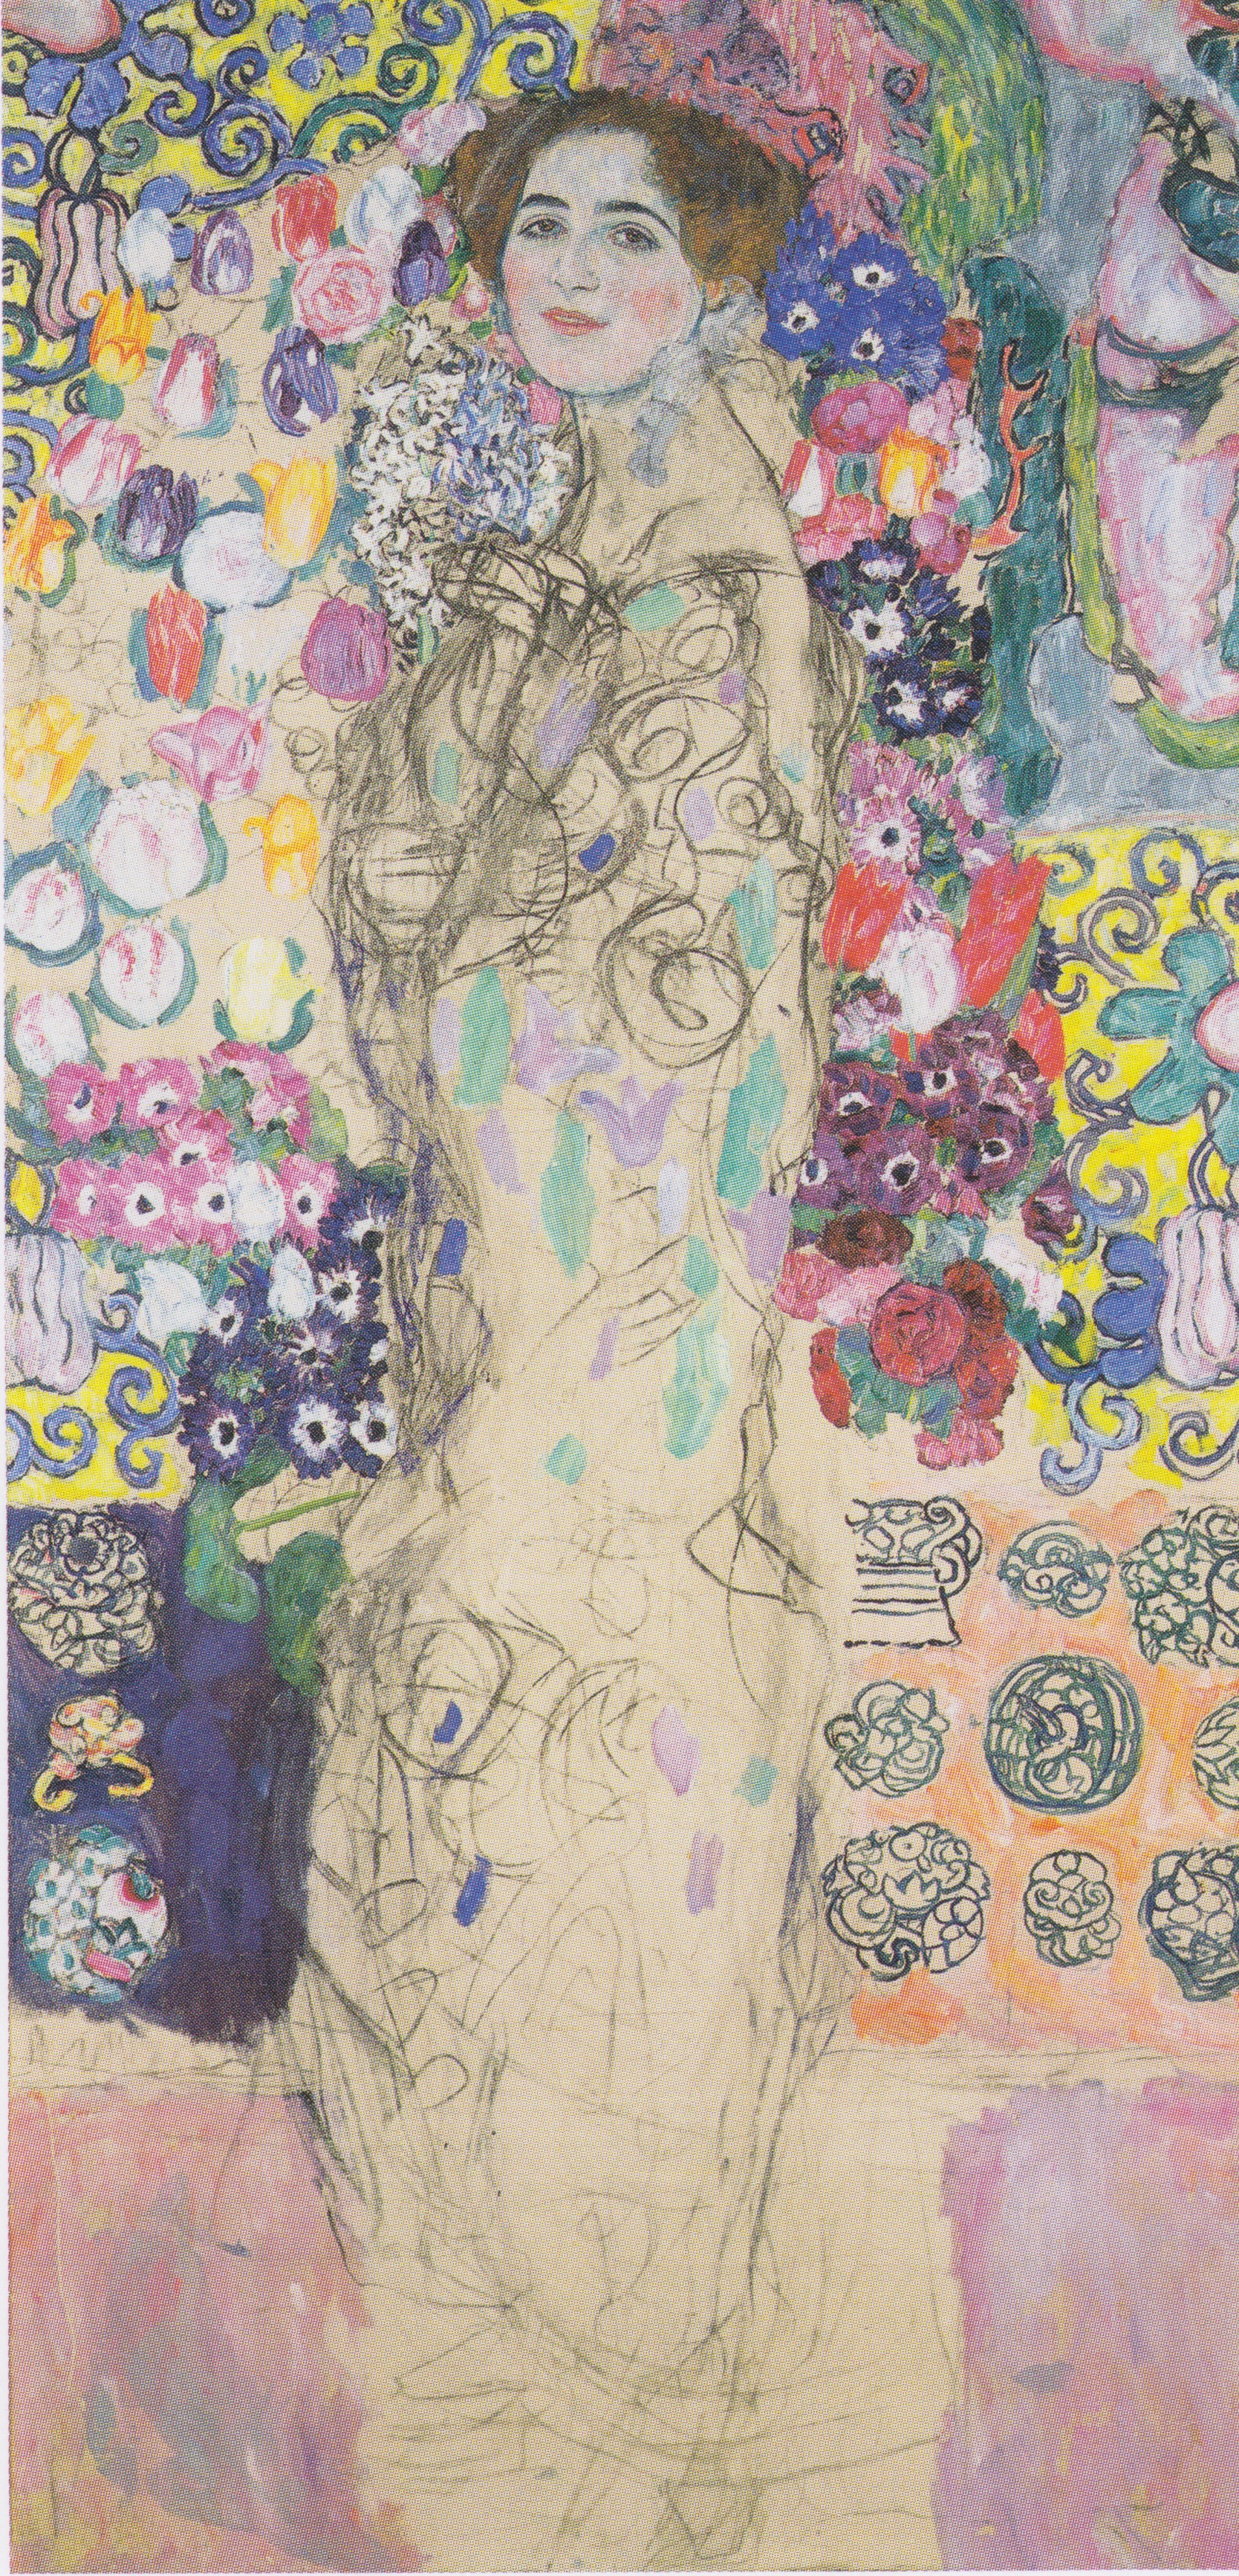 Ria Munk by Gustav Klimt, 1913-18 (Wikimedia Commons)